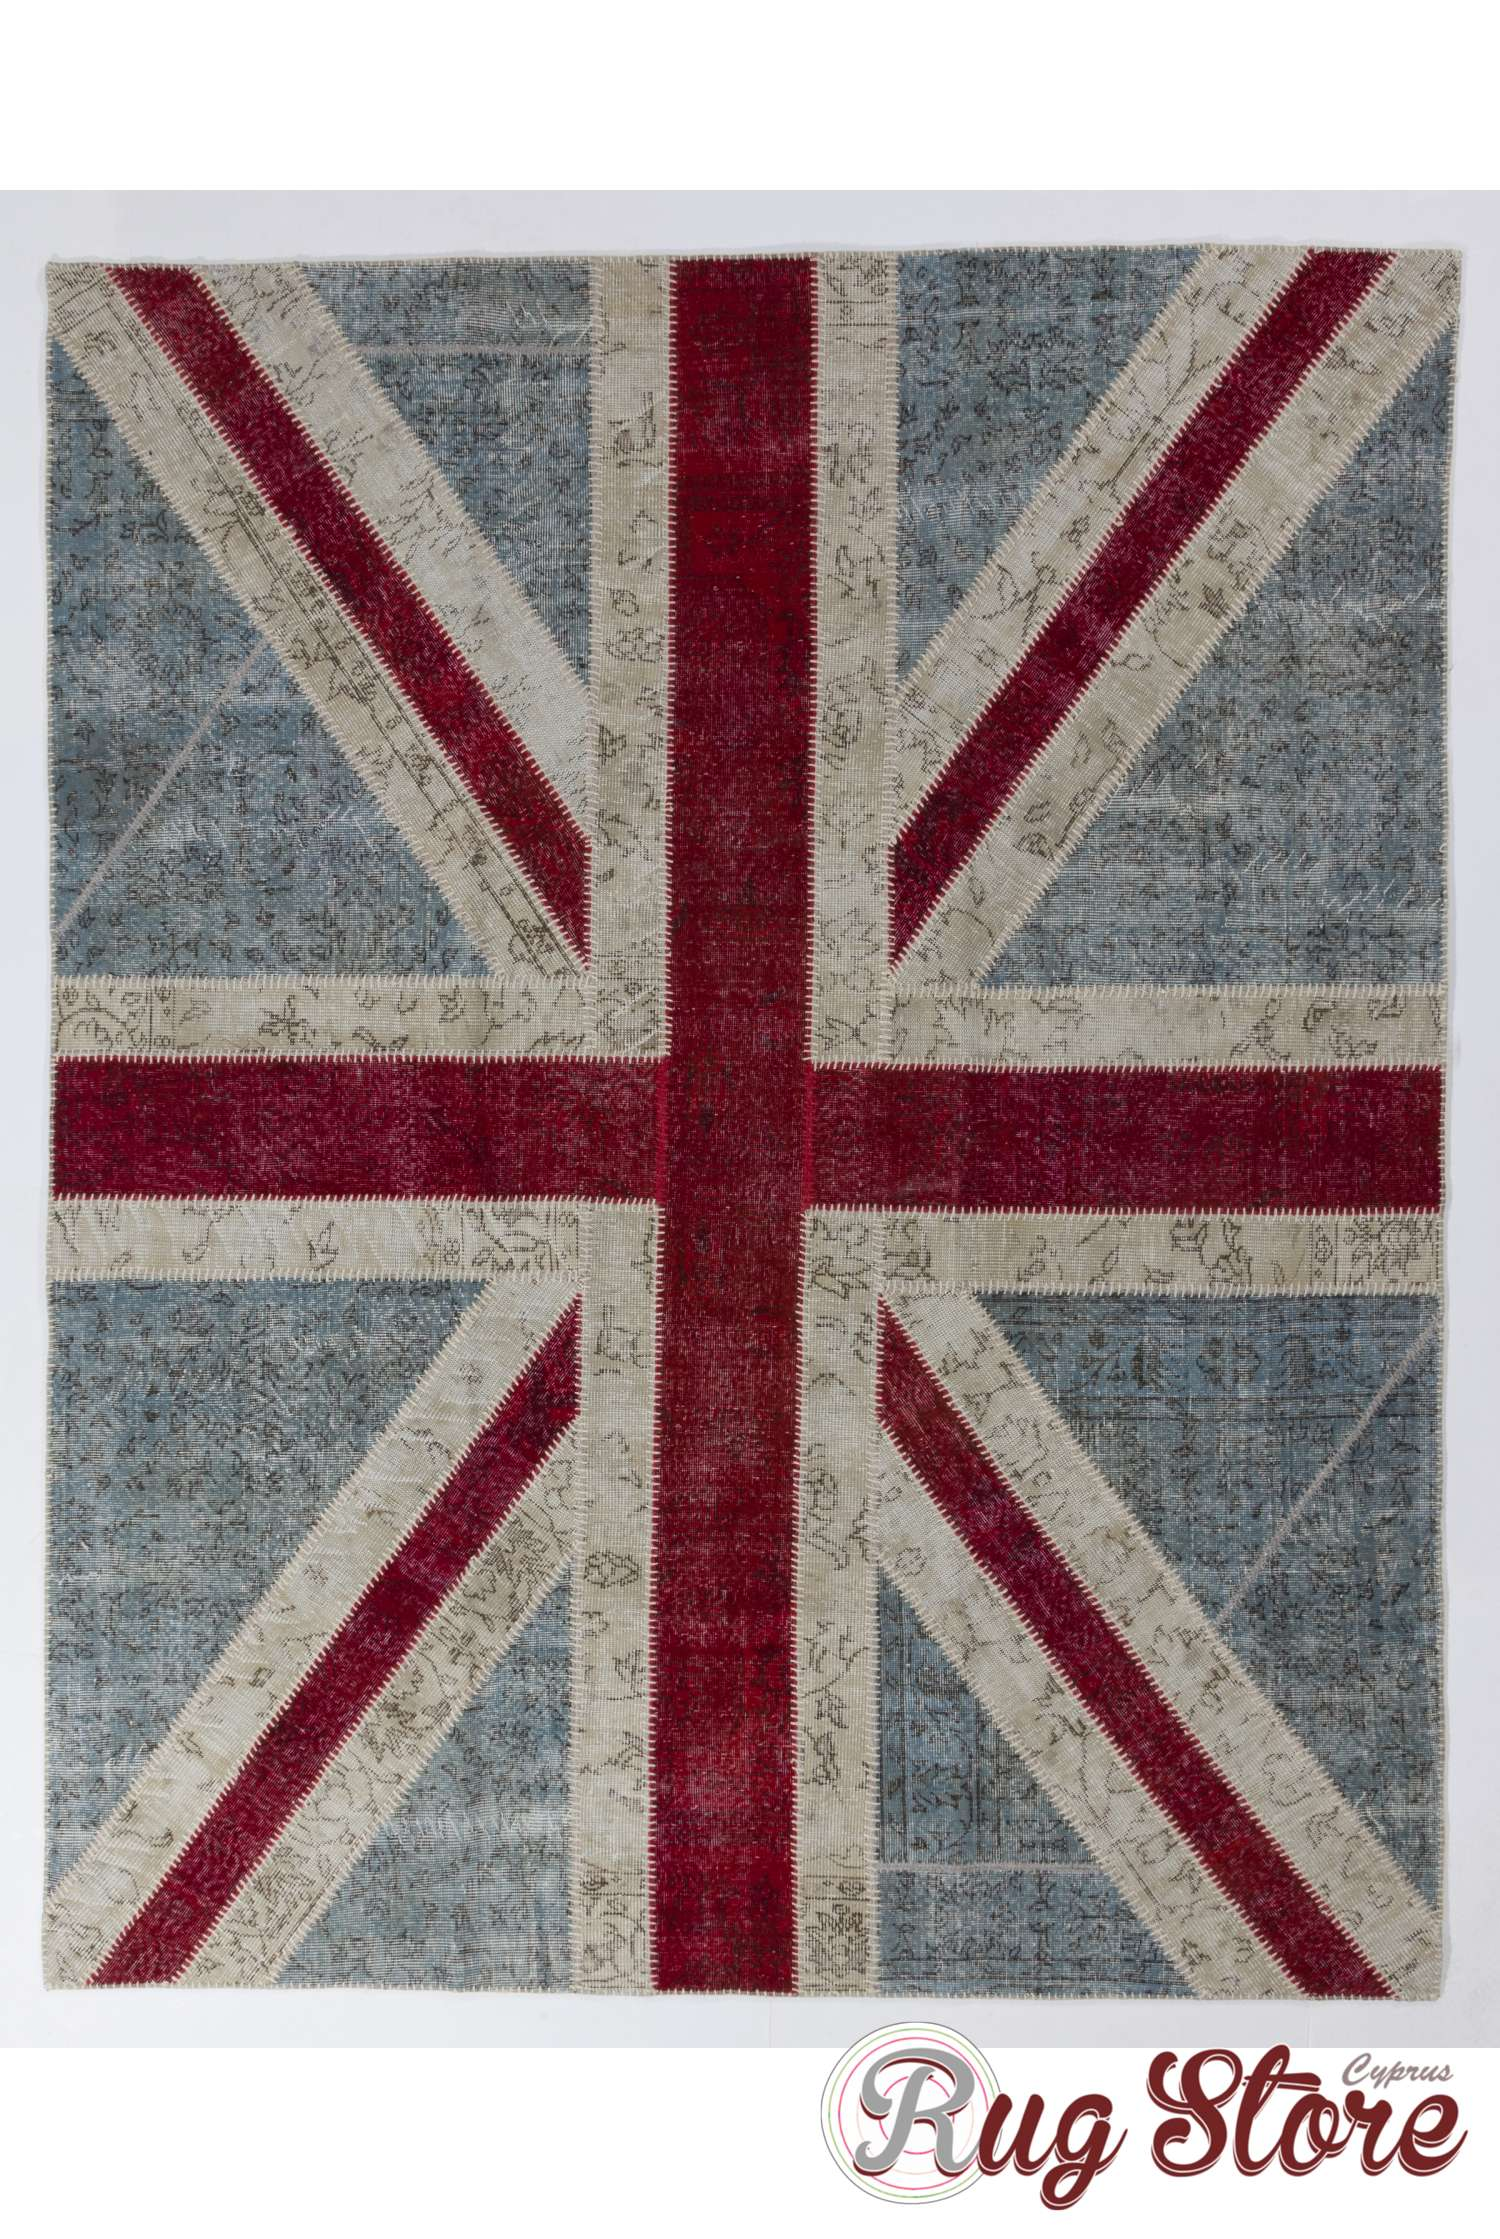 245x305 Cm British Flag Union Jack Design Patchwork Rug